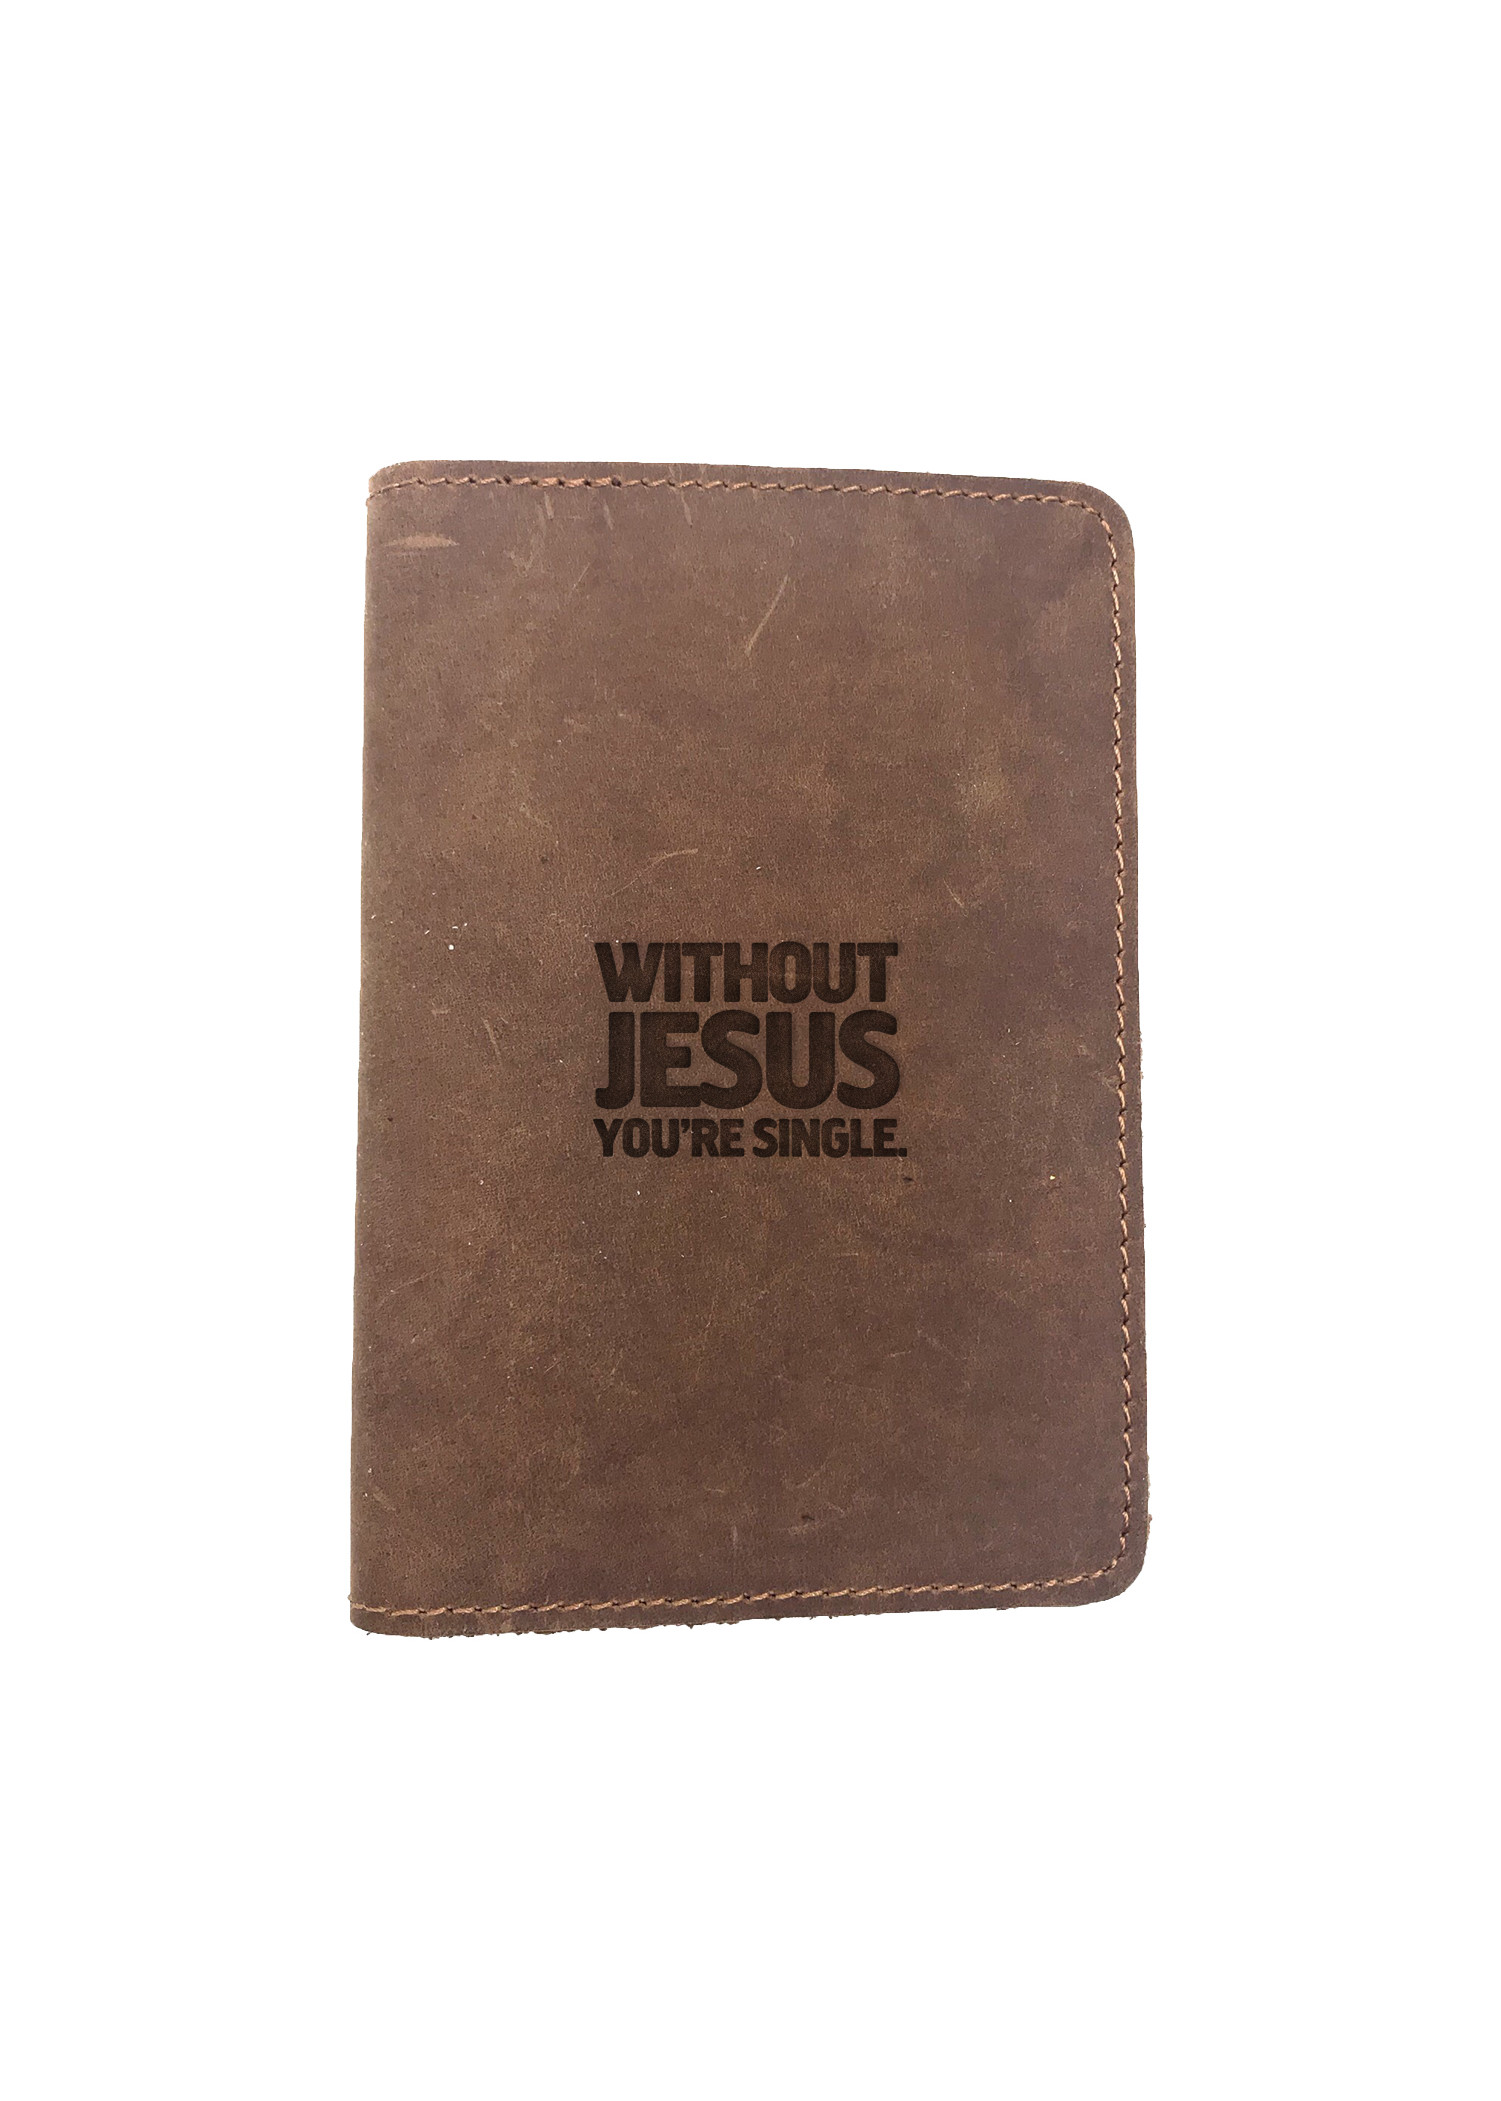 Passport Cover Bao Da Hộ Chiếu Da Sáp Khắc Hình Chữ WITHOUT JESUS YOU RE SINGLE (BROWN)